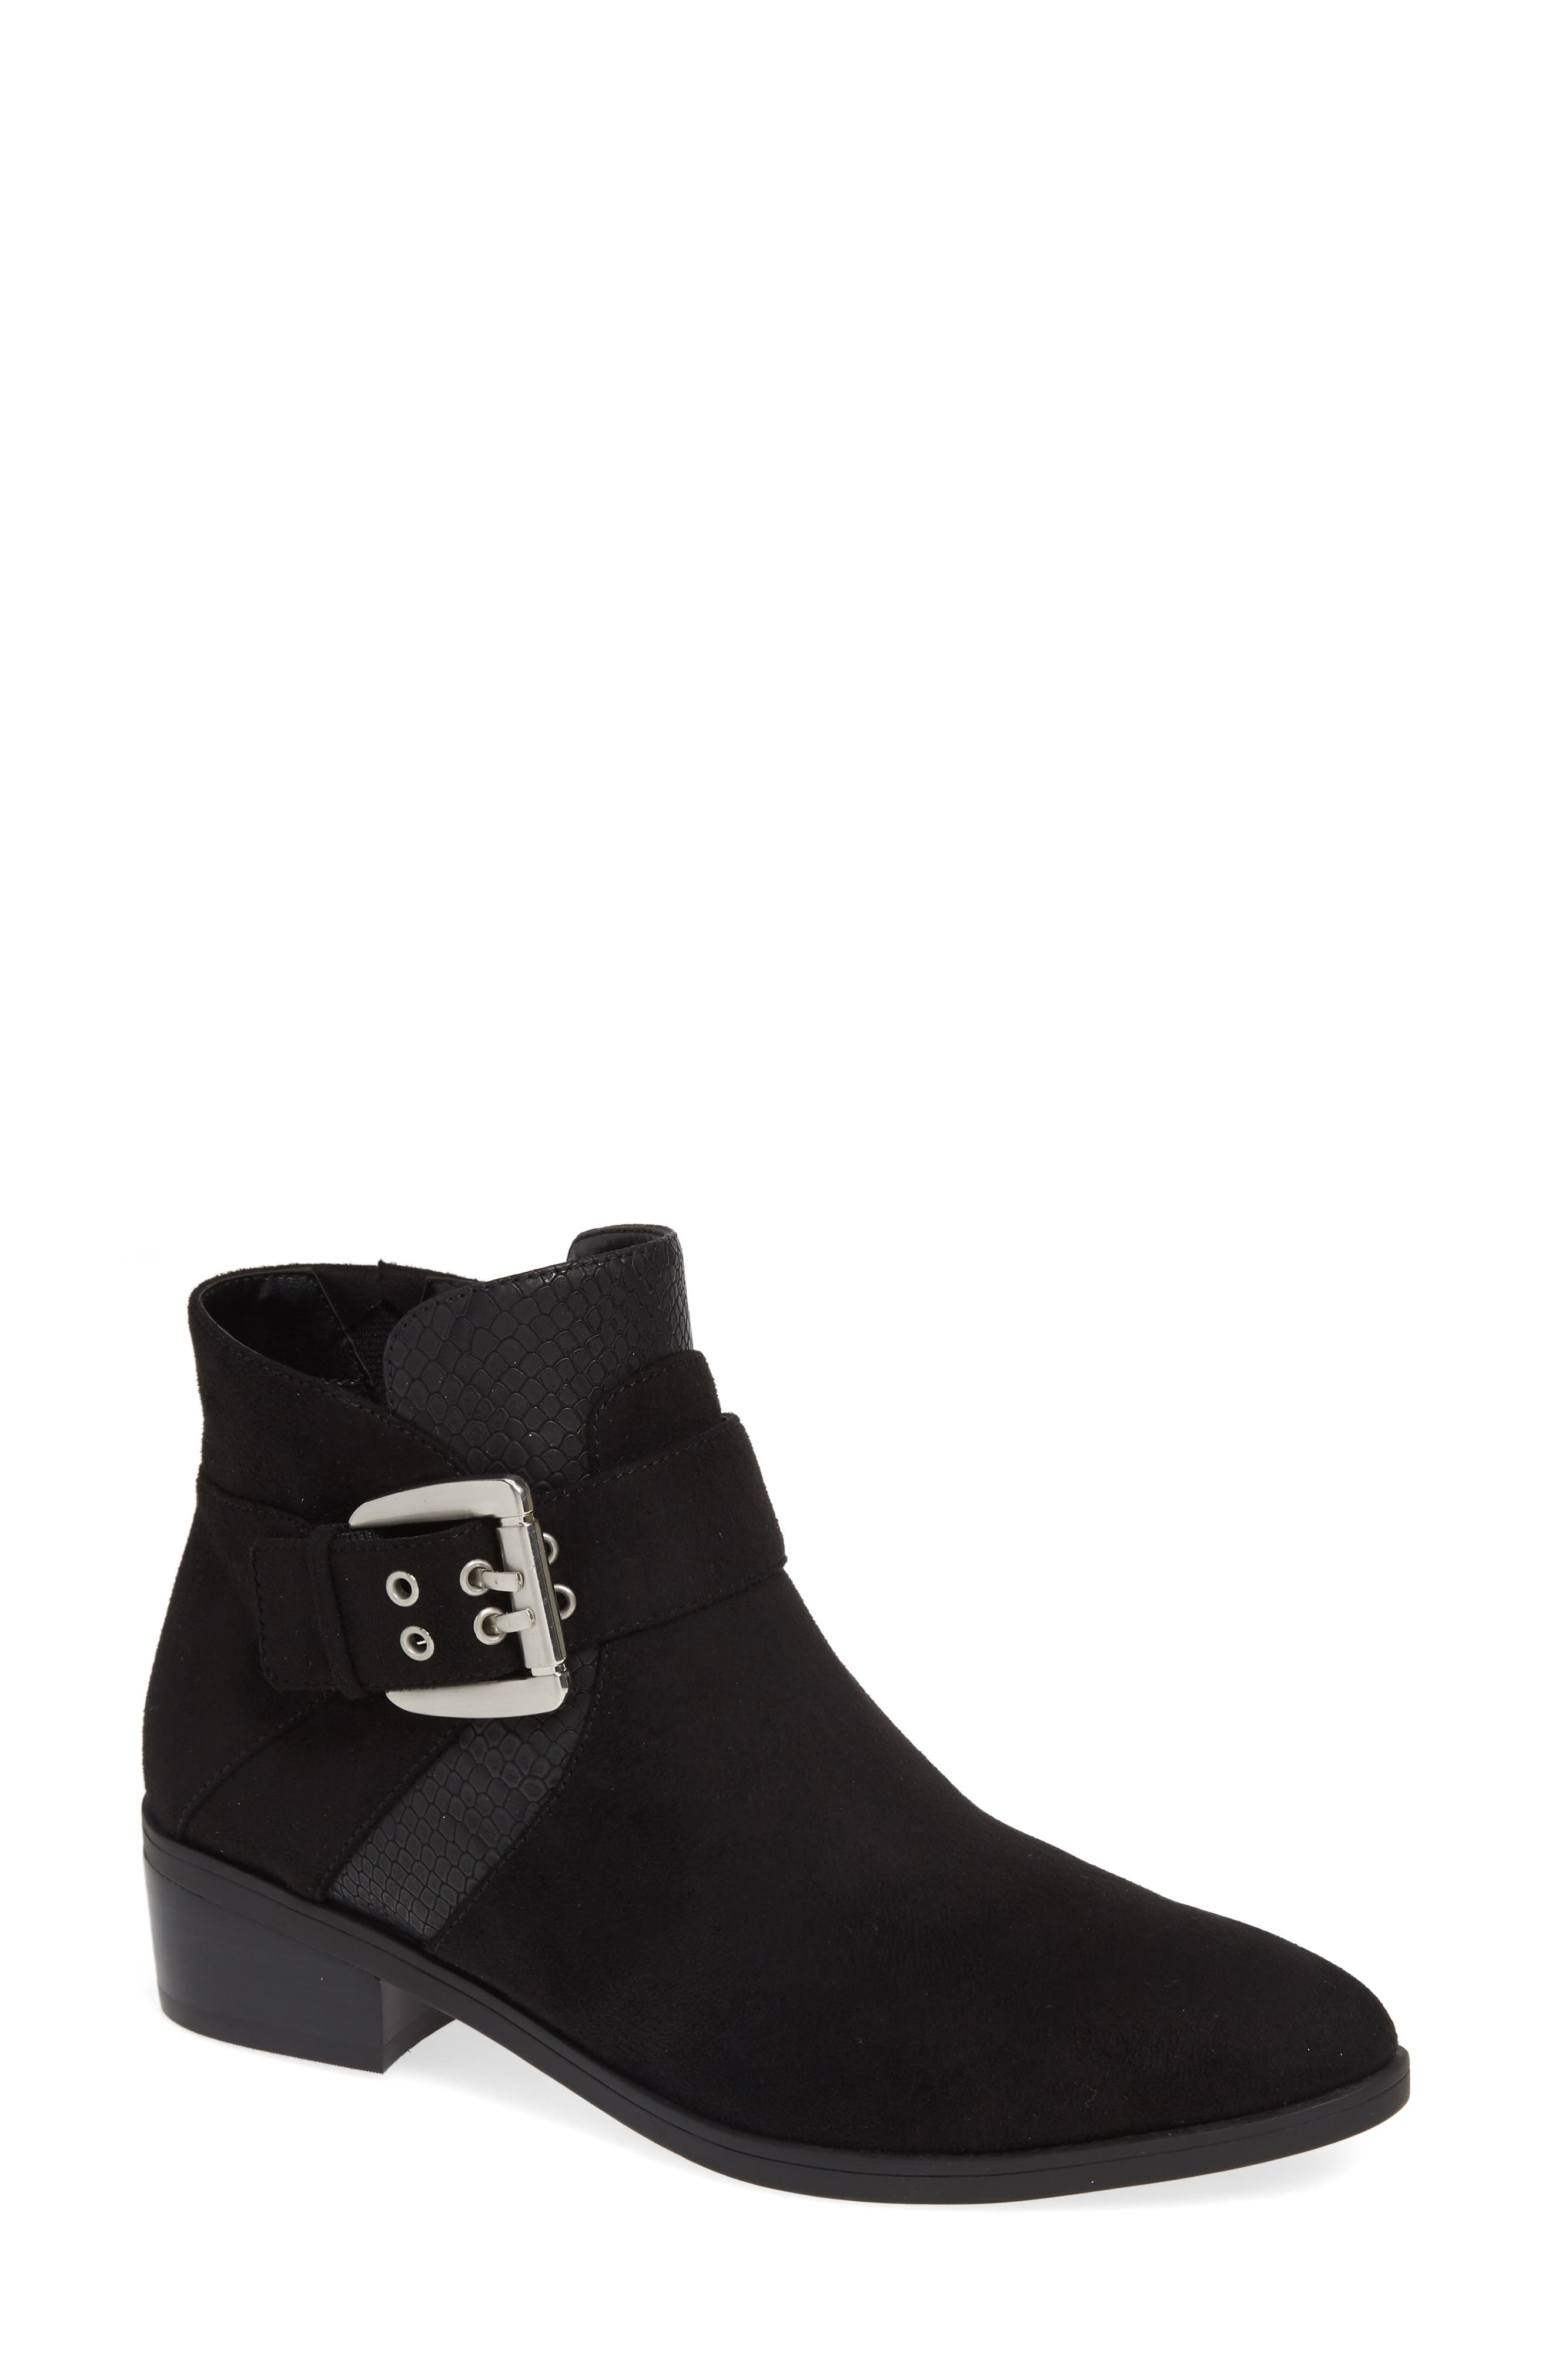 Bella Vita Honor Ii Bootie- Black